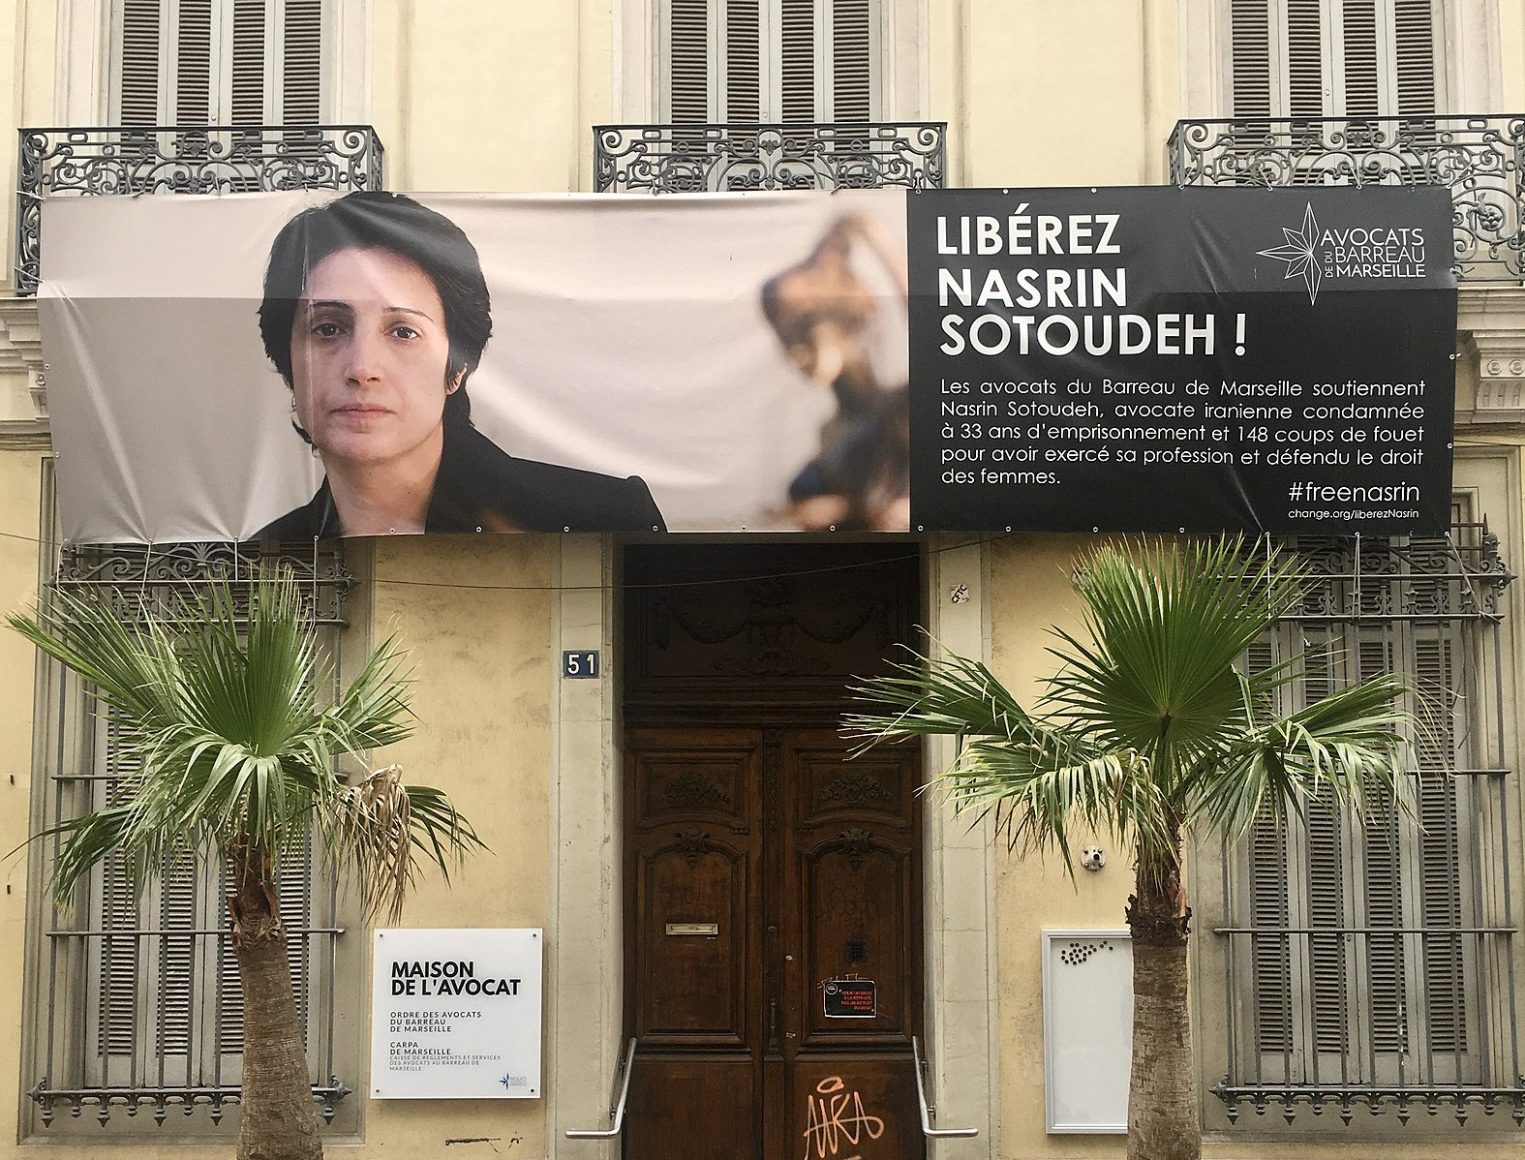 A poster in support of Iranian women's rights activist Nasrin Sotoudeh and demanding her release hangs on a building in Marseille, France